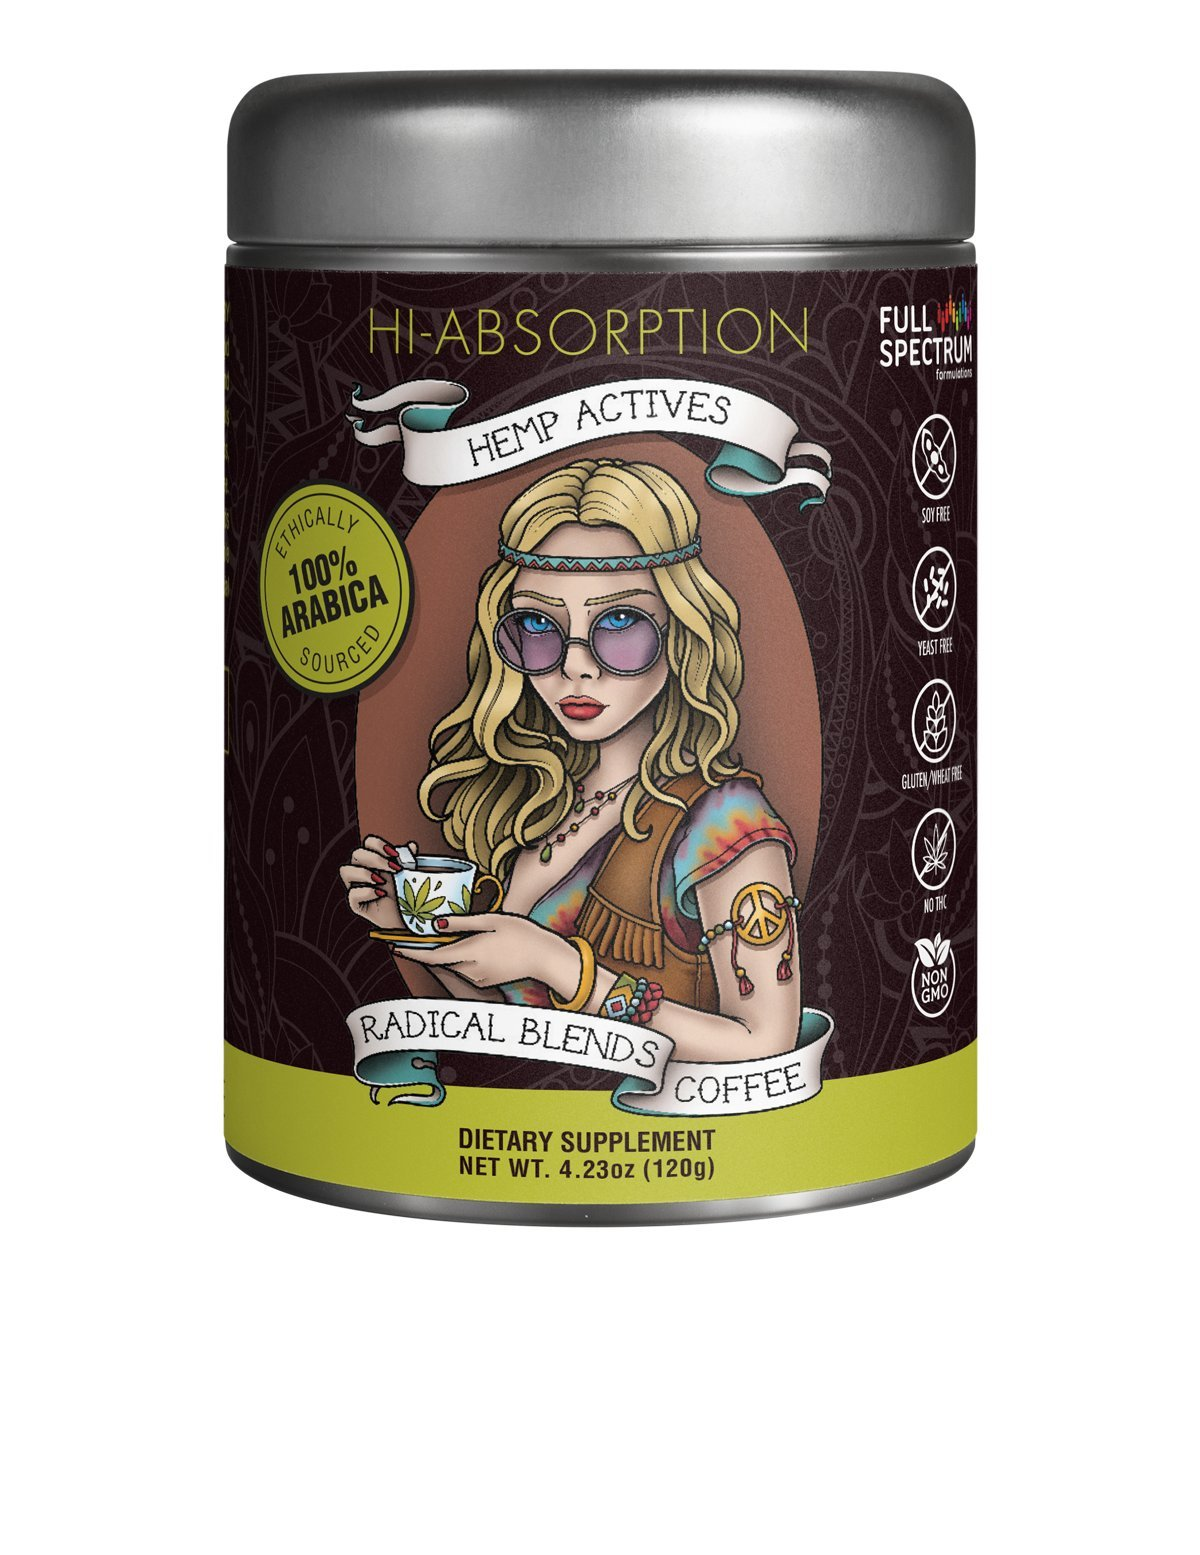 Hemp Oil Supplement with 100% Arabica Microground Coffee for Anxiety and Pain Relief - PCR Full Spectrum, Non-GMO, No THC, GMP Certified - High Absorption Support for Cellular Health (120 g)